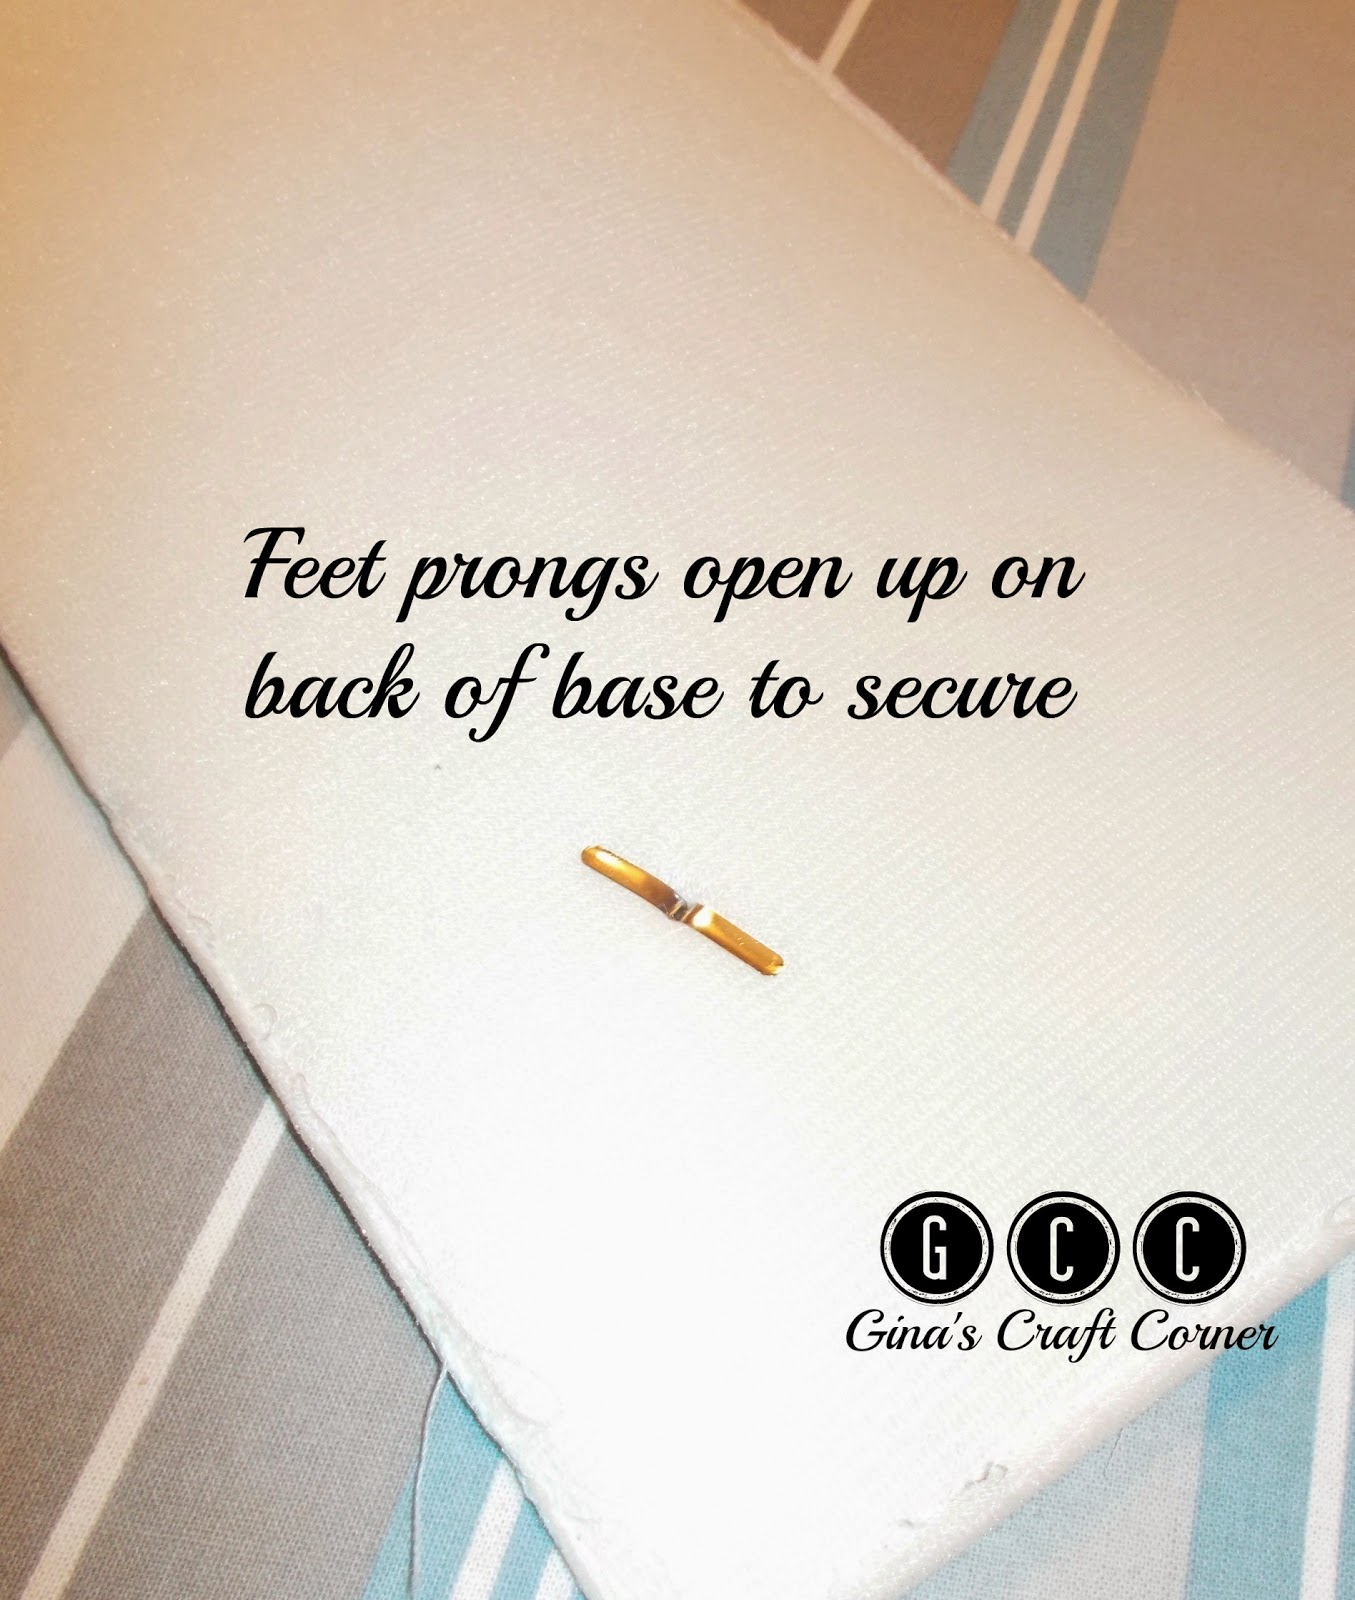 How to add purse feet to handbags by GCC (Gina's Craft Corner)